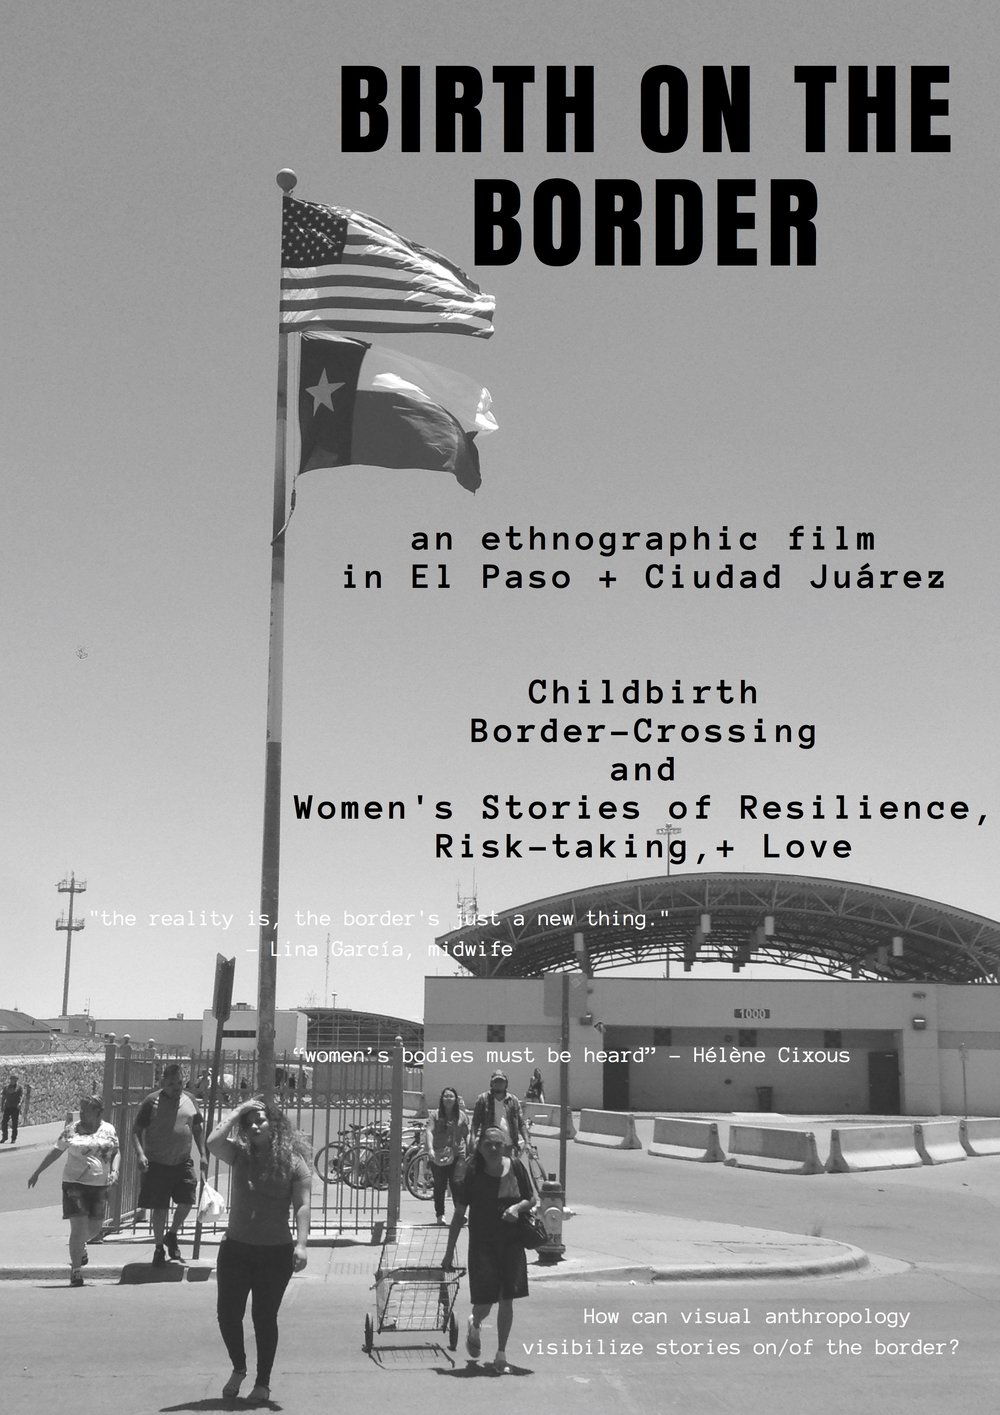 Birth on the Border Film Black and White Poster.jpg